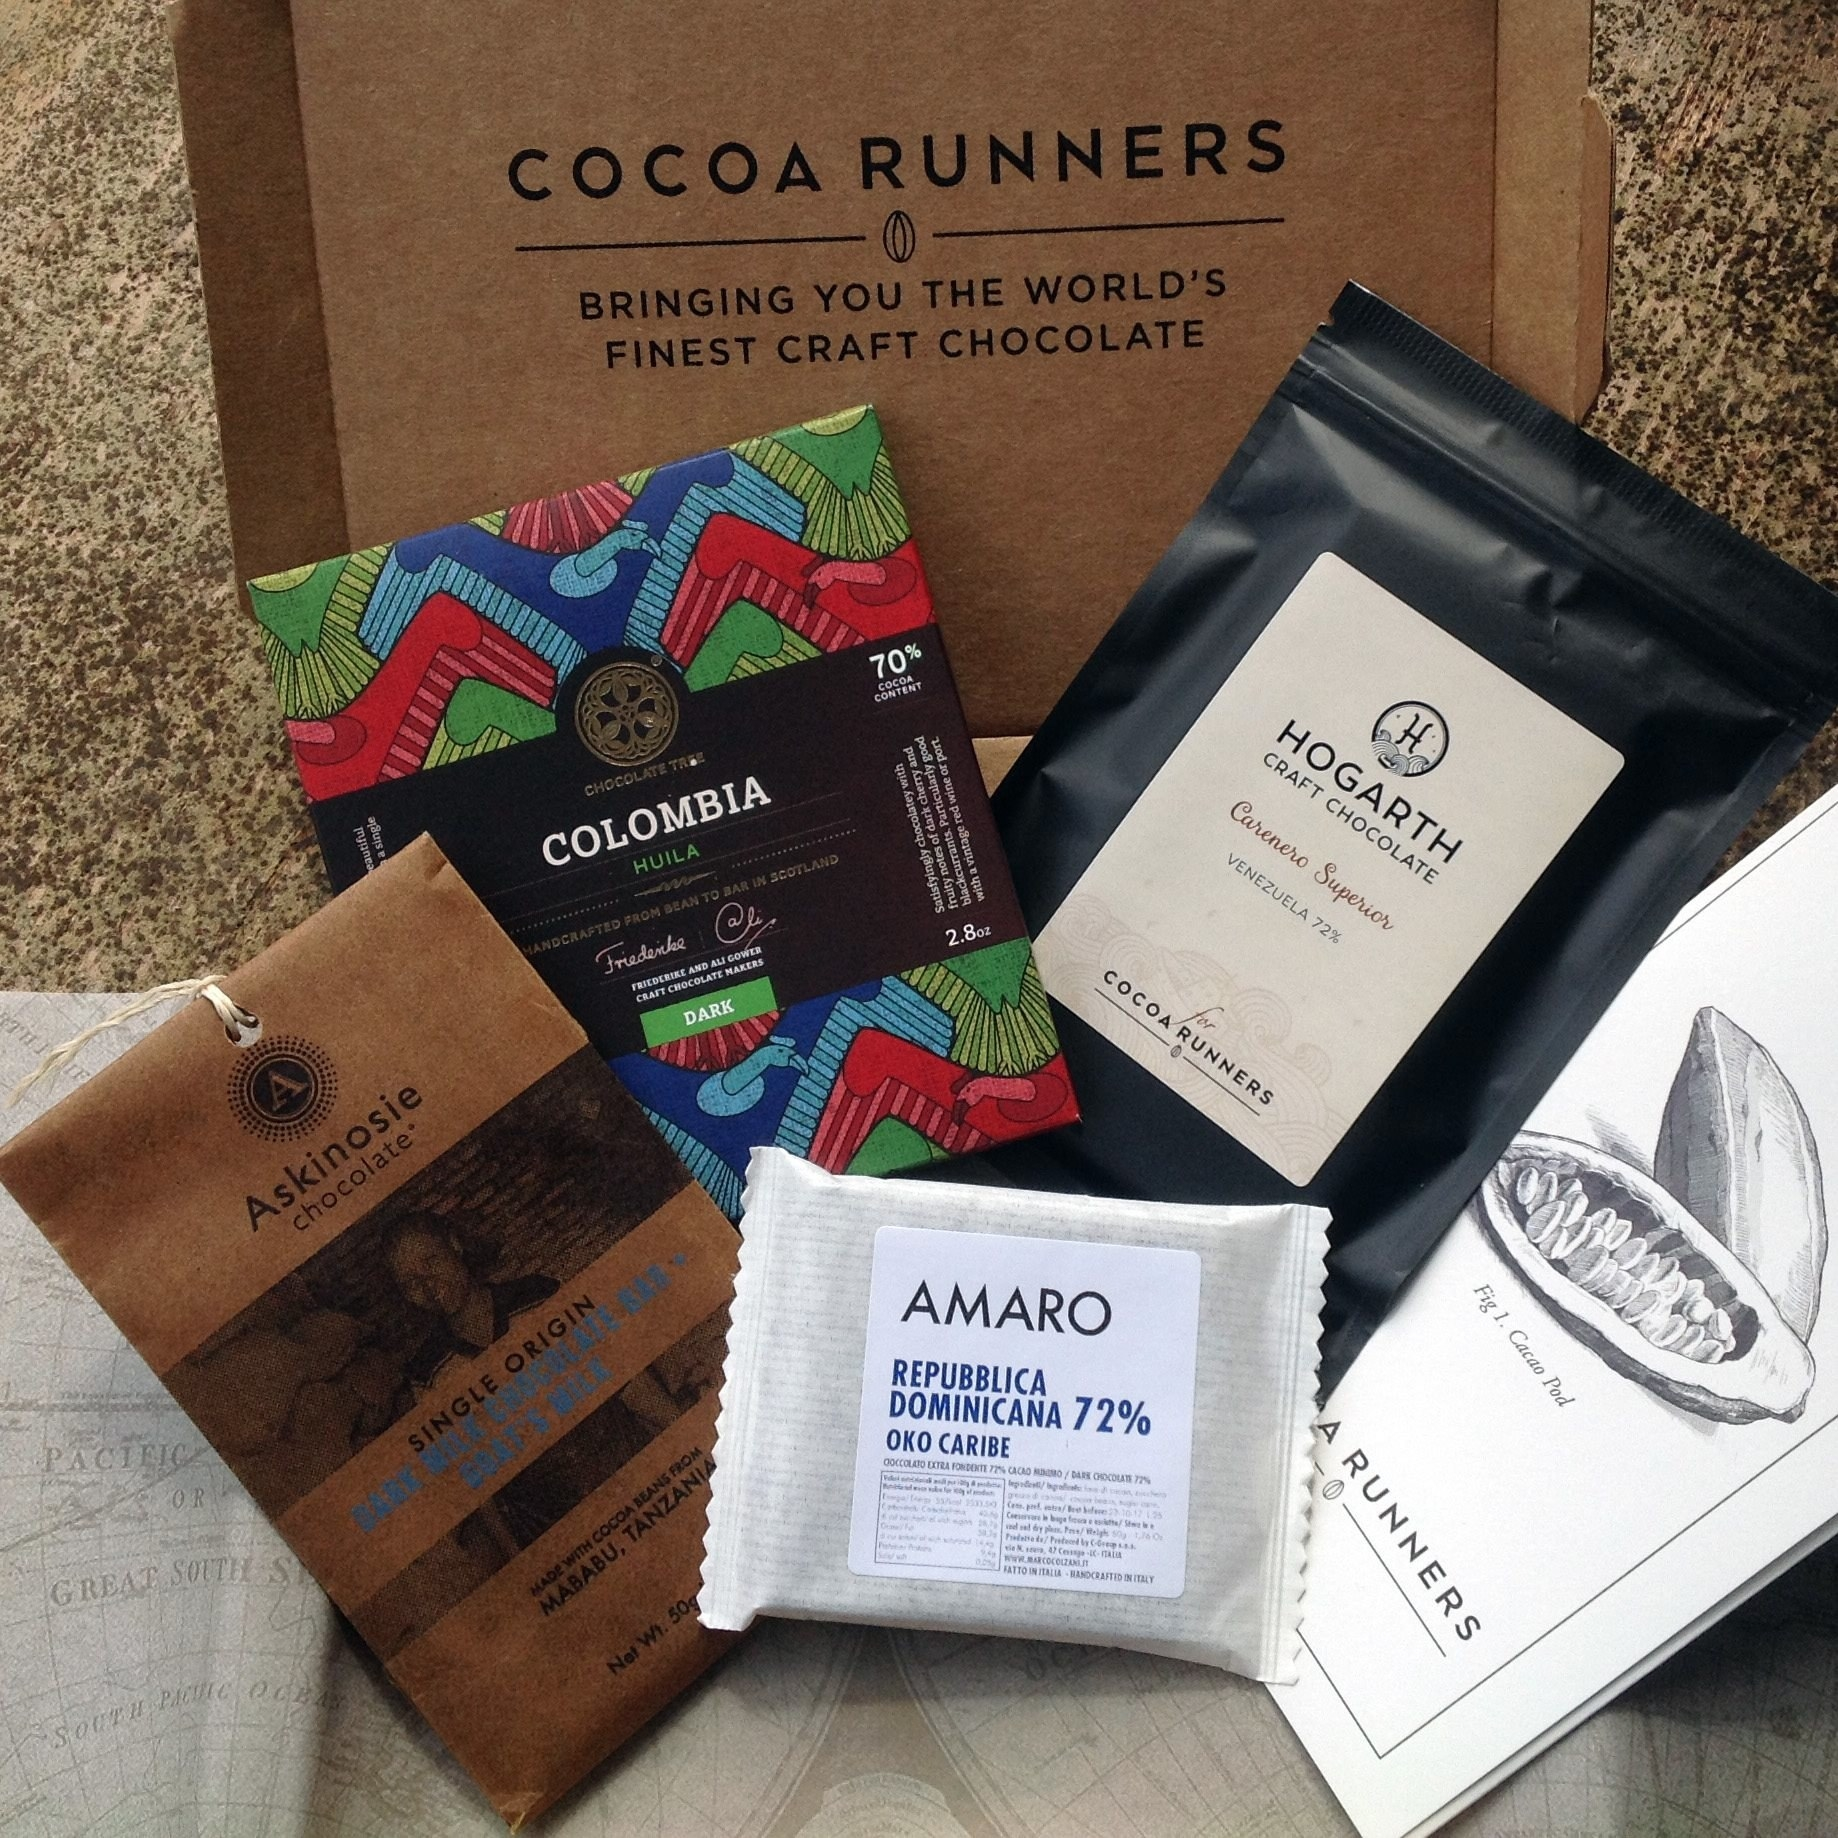 The Cocoa Runners box